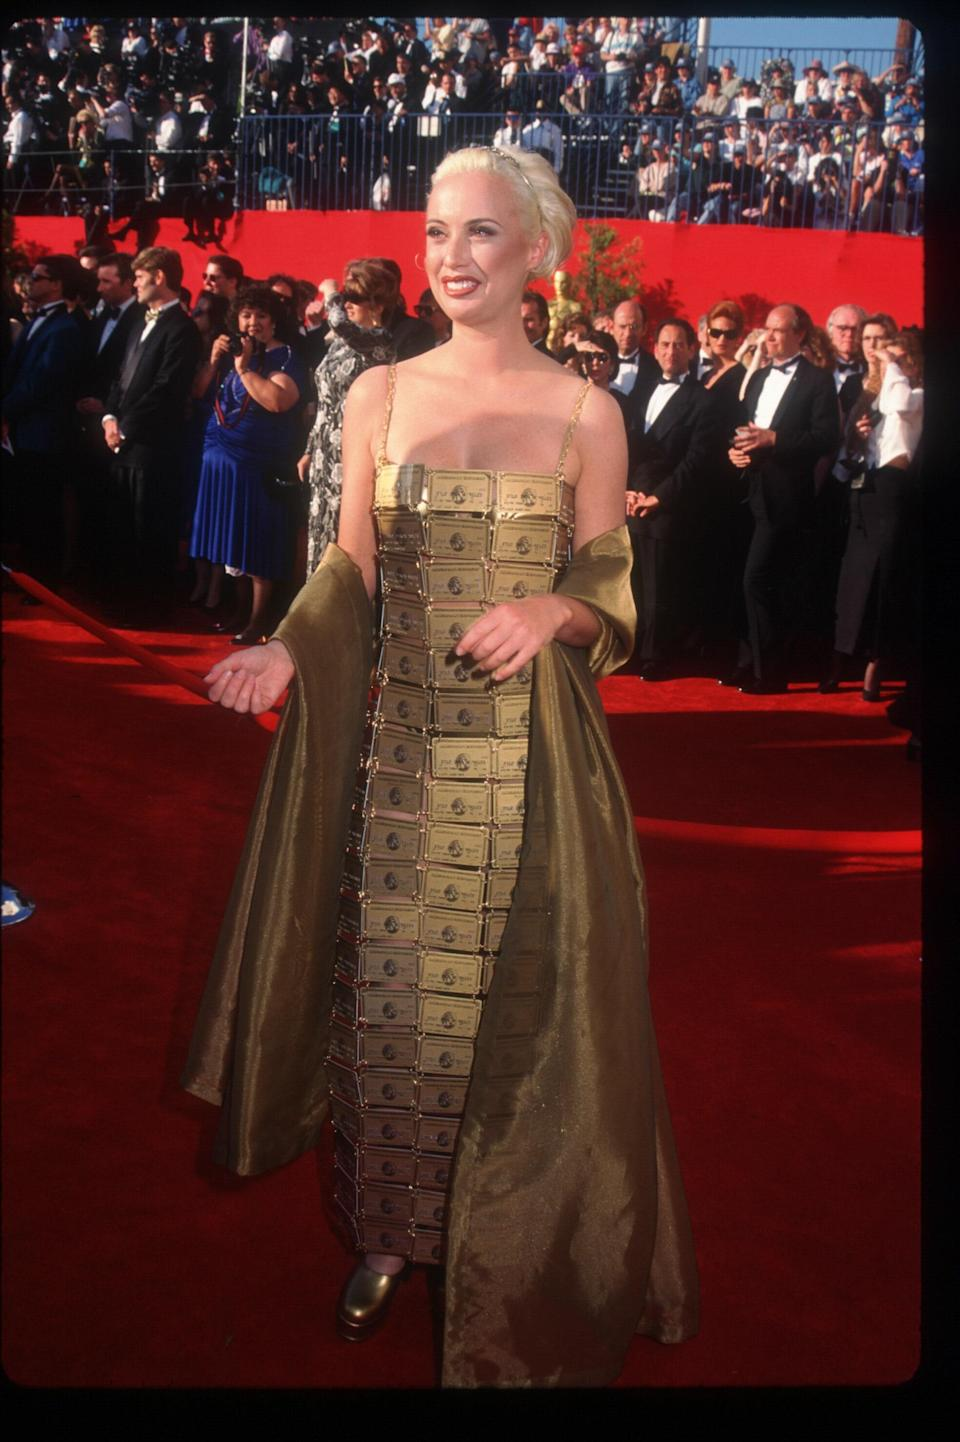 """Lizzy Gardiner, an Australian costume designer, won the Oscar for best costume design for <em>The Adventures of Priscilla.</em> She showed up to the red carpet in a dress that was made out of 254 American Express Gold cards, all joined together by wire. Gardiner explained that the dress was actually made for the movie, but it got vetoed, so she wore it to the carpet, because """"I'm broke, and I didn't have anything to wear."""" Gardiner also <a href=""""https://www.abc.net.au/news/2017-06-05/priscillas-1995-oscar-win-and-that-dress/8578418"""" rel=""""nofollow noopener"""" target=""""_blank"""" data-ylk=""""slk:later reflected"""" class=""""link rapid-noclick-resp"""">later reflected</a> on the look: """"On the night it really upset a lot of people. A lot of women, I think they felt upstaged or pissed off that I wasn't taking things as seriously as I should."""" Fashion fans loved its creativity, though, and Vaquera paid <a href=""""https://www.vogue.com/article/vaquera-credit-card-dress-lizzy-gardiner-spring-2018?mbid=synd_yahoo_rss"""" rel=""""nofollow noopener"""" target=""""_blank"""" data-ylk=""""slk:homage to it"""" class=""""link rapid-noclick-resp"""">homage to it</a> back in 2017."""